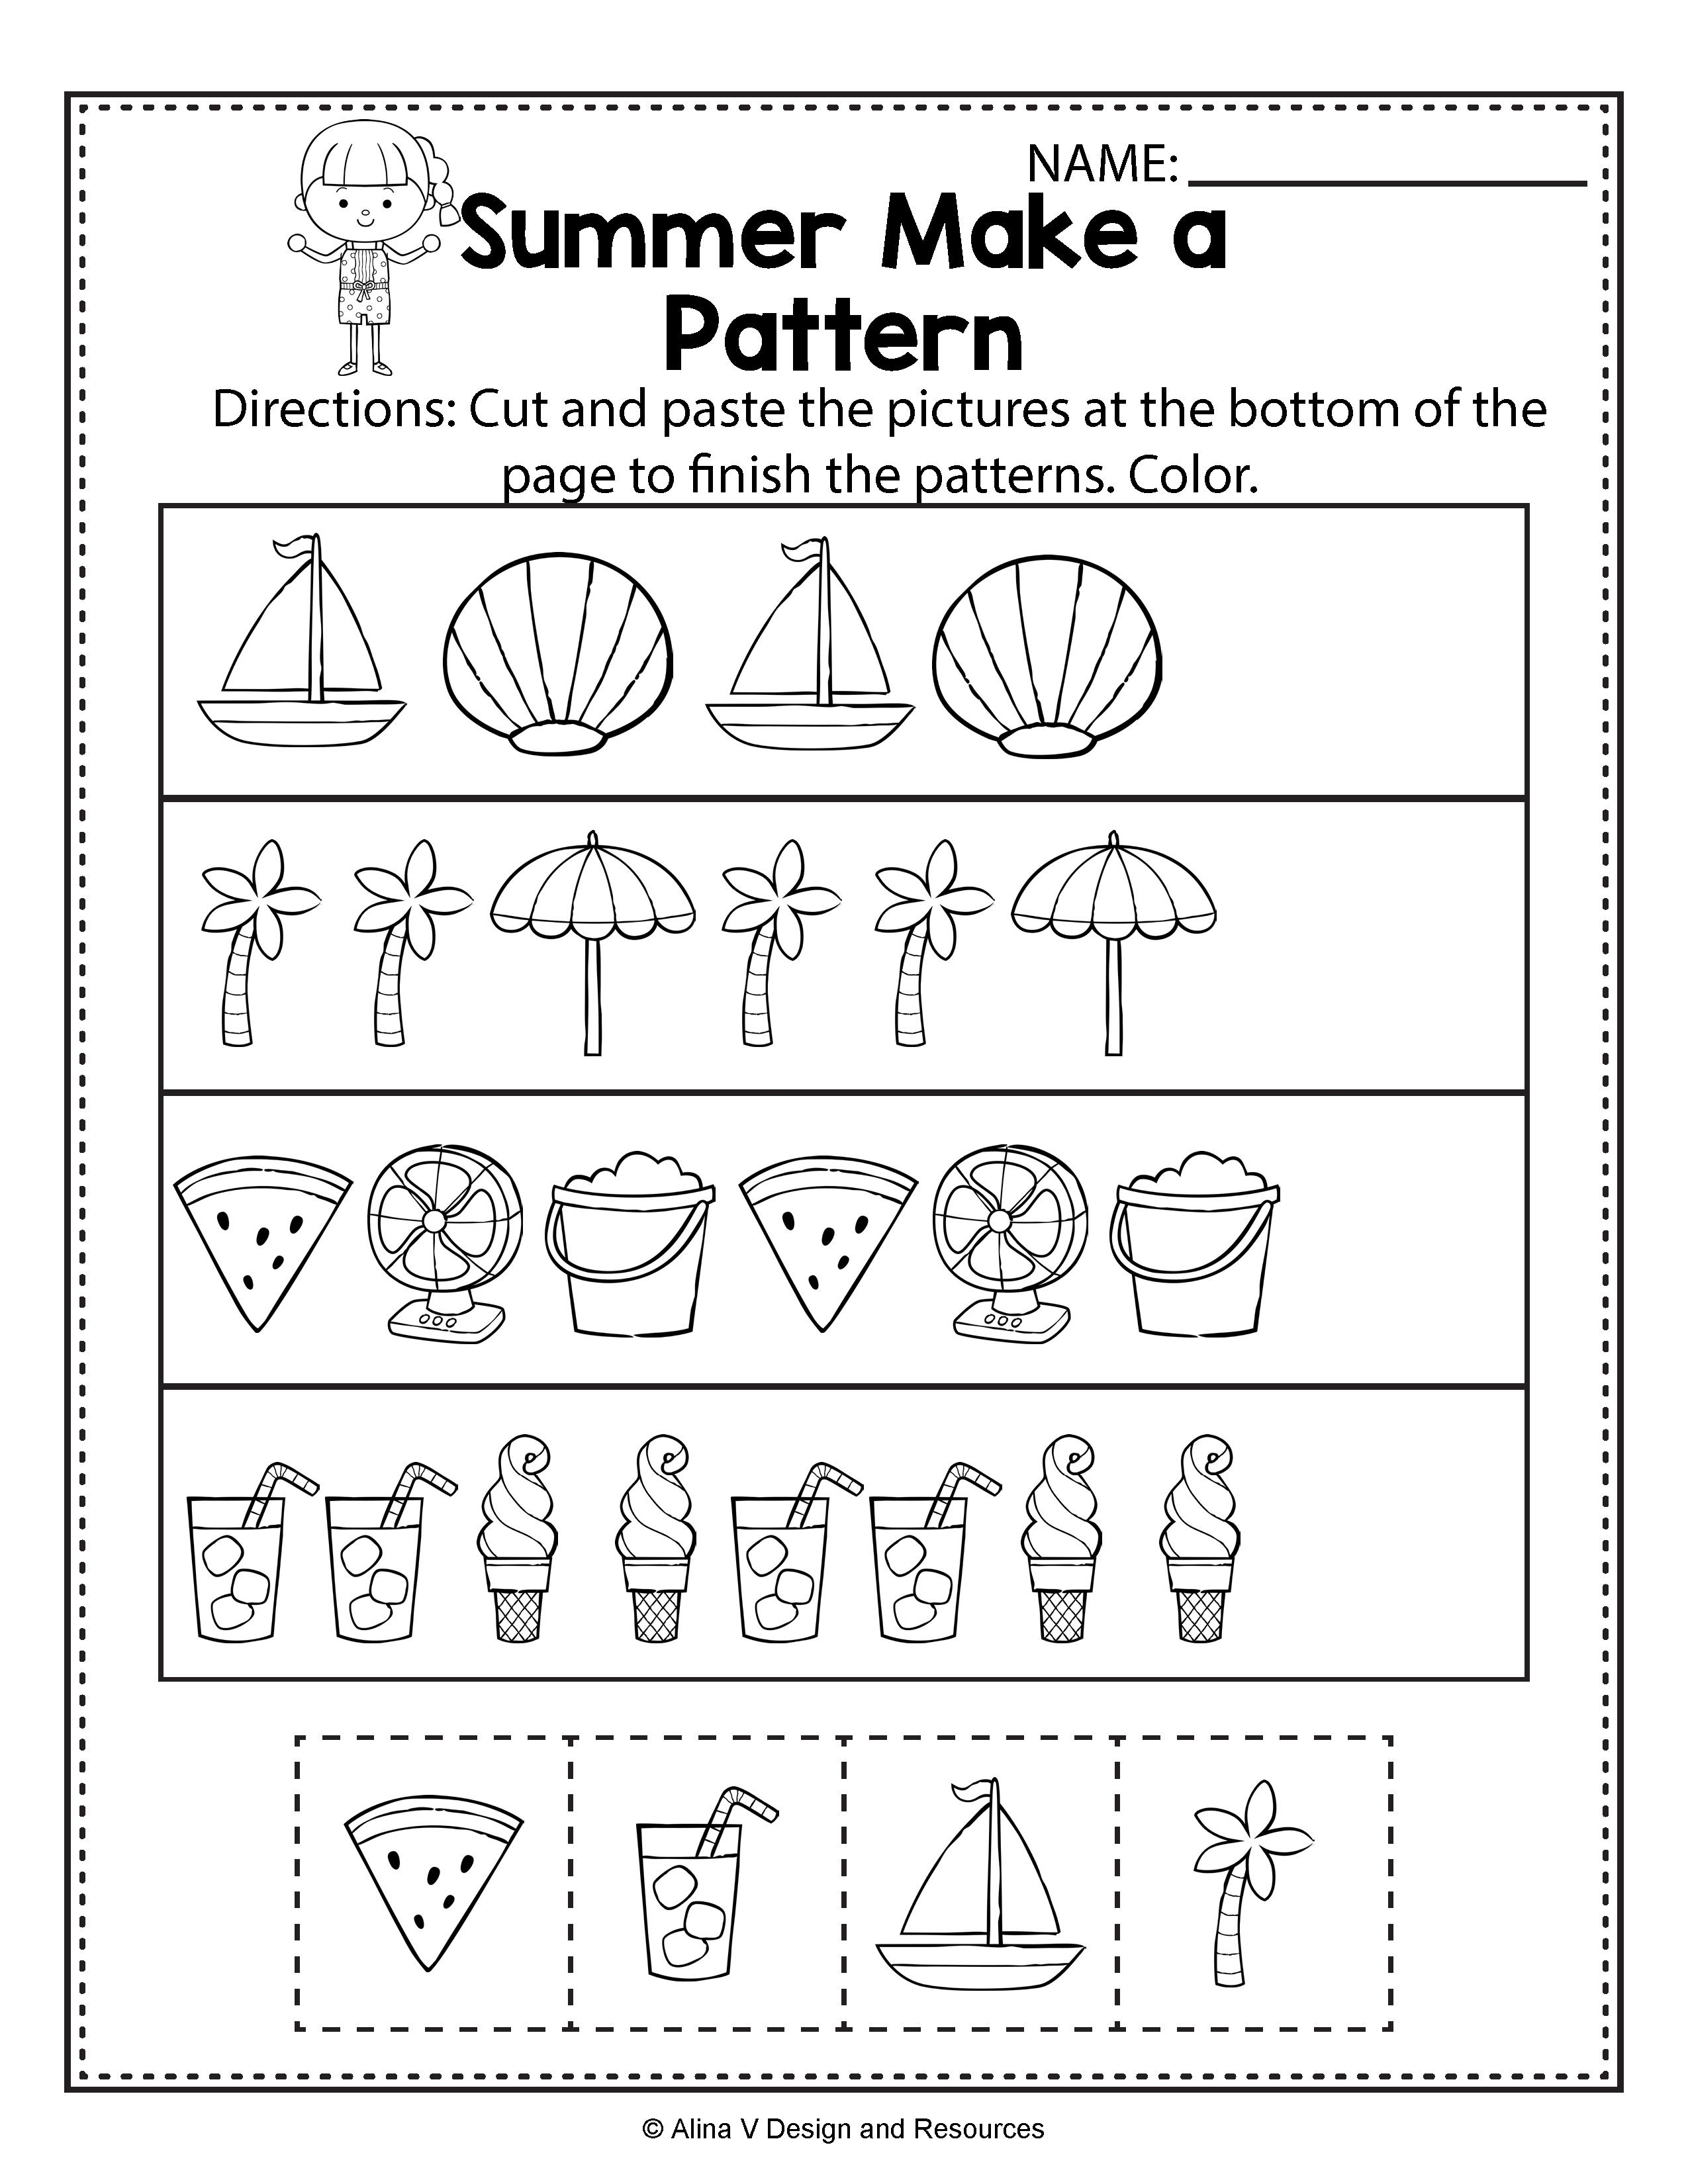 Make A Pattern Summer Math Worksheets And Activities For Preschool Kindergarten And 1st Grade Rhyming Worksheet Summer Math Worksheets Preschool Worksheets